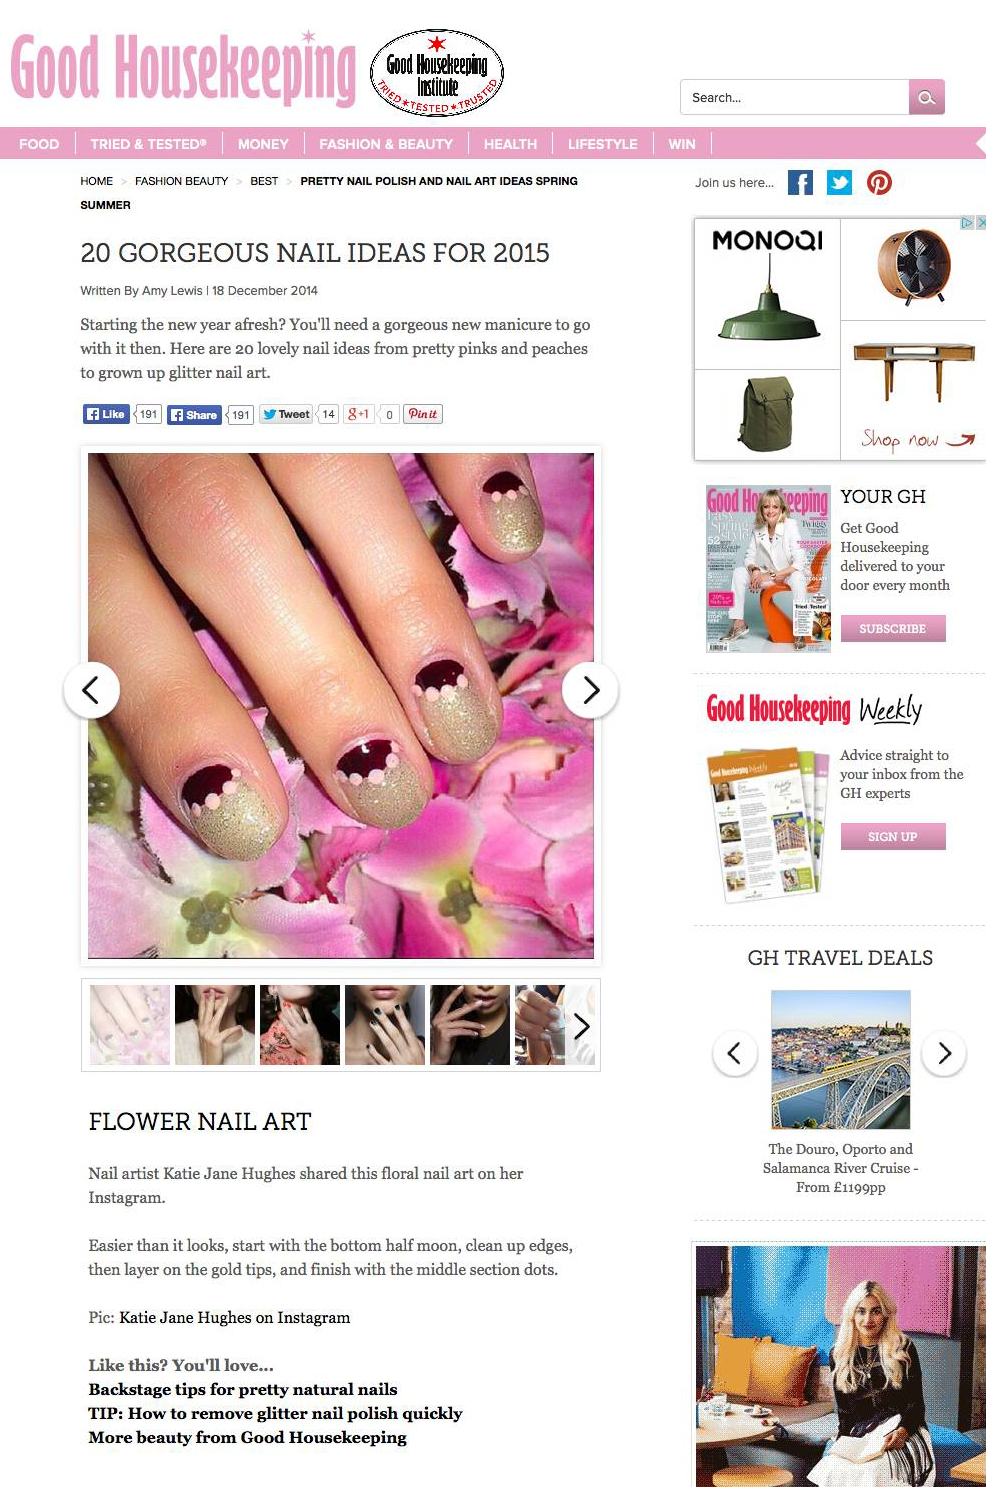 Nail_polish_and_nail_art_ideas_-_Spring_nail_inspiration_-_Good_Housekeeping_-_2015-03-17_23.04.40.png